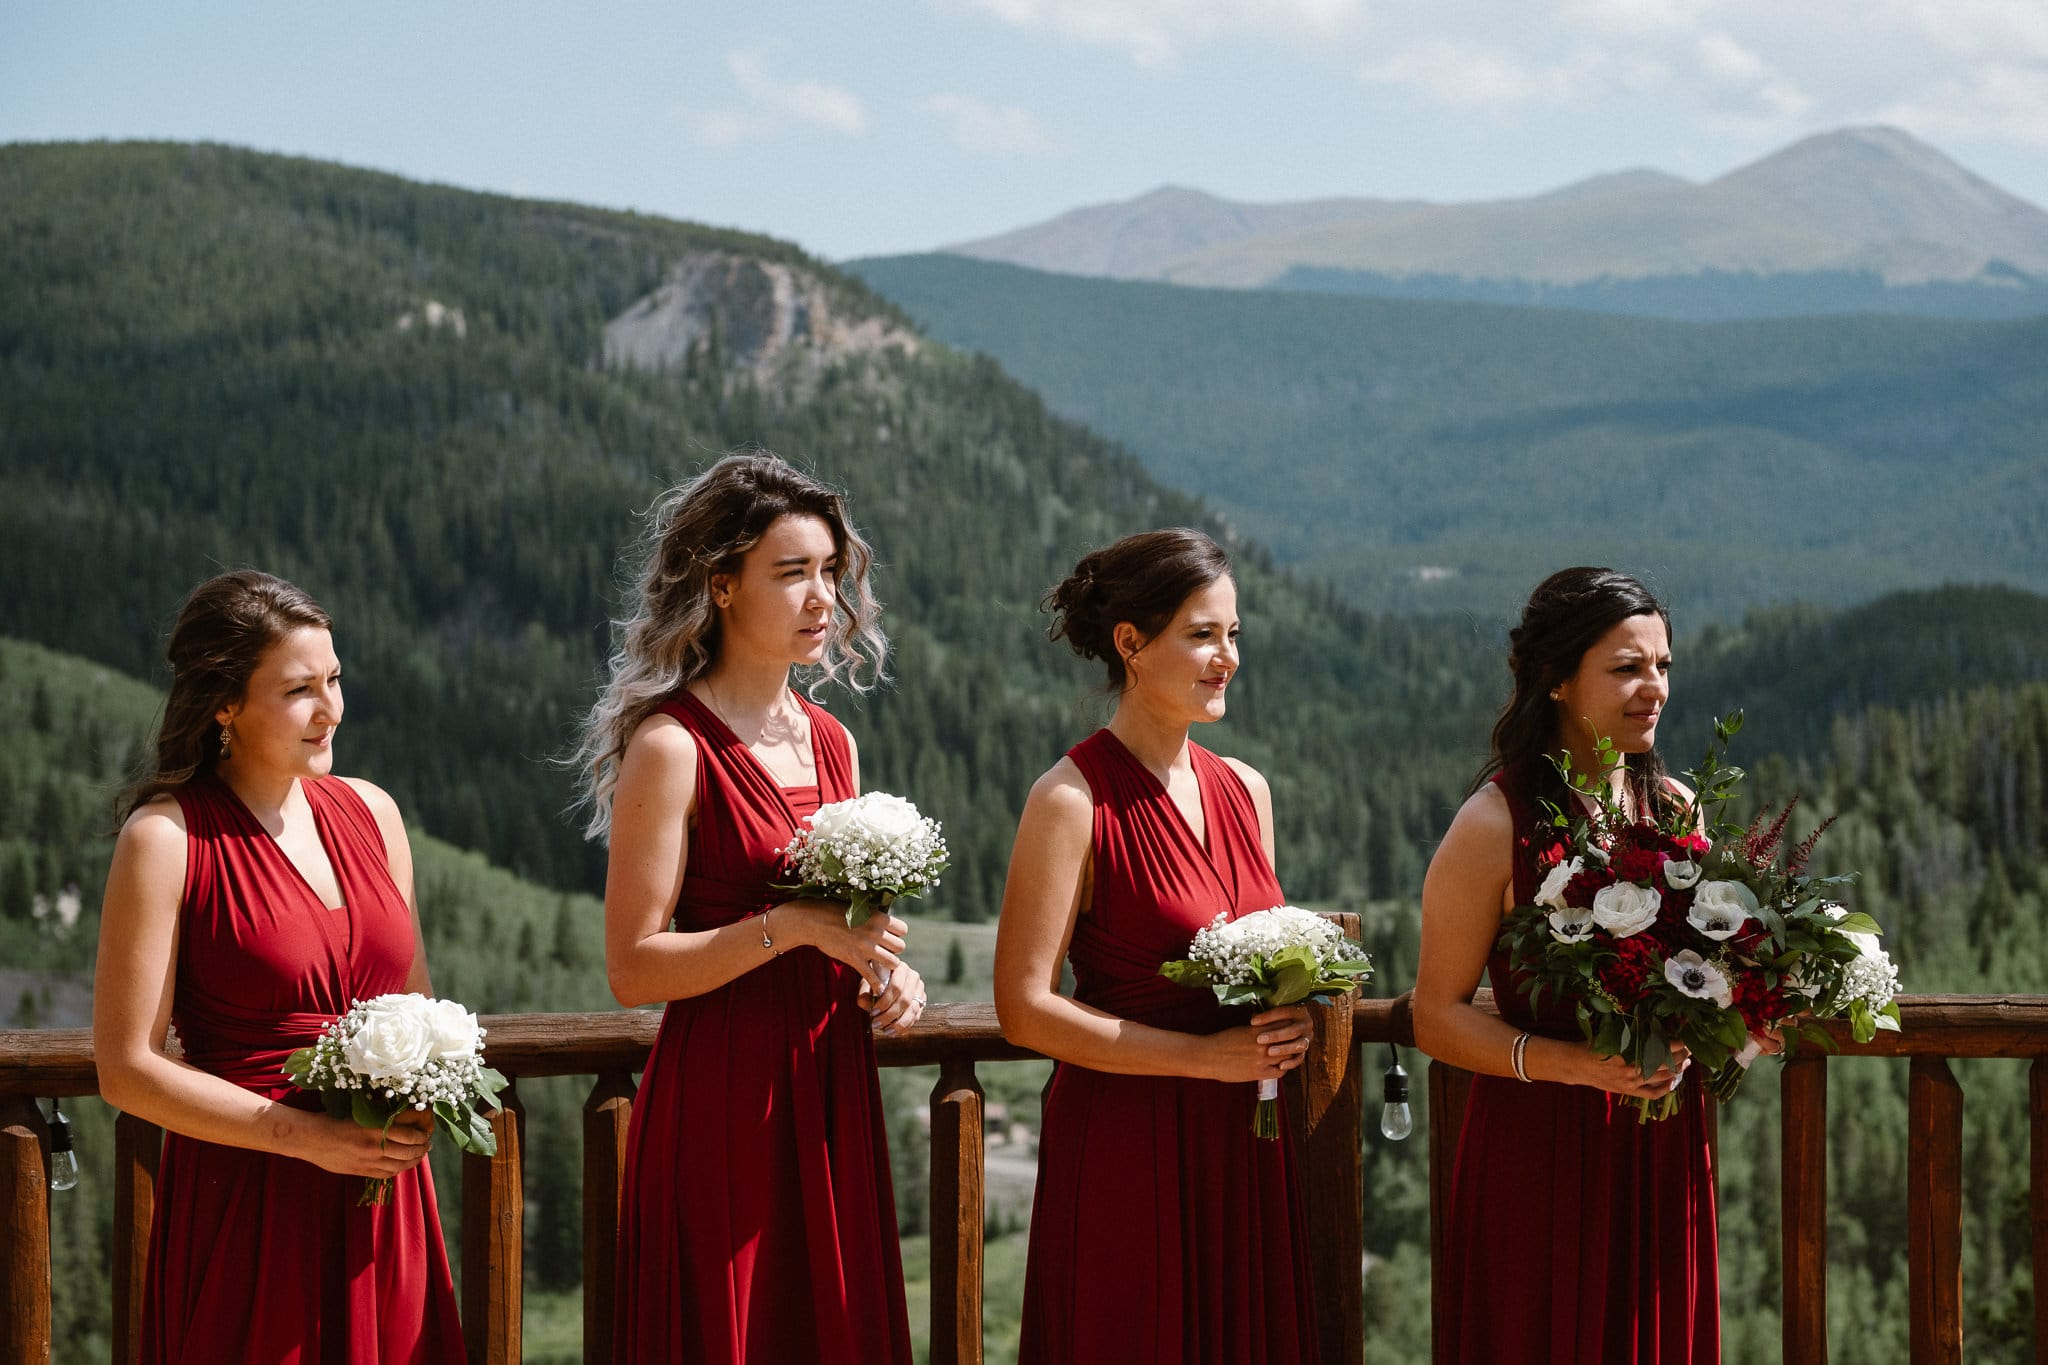 Lodge at Breckenridge Wedding Photographer, Colorado mountain wedding photographer, intimate wedding ceremony, bridesmaids in front of mountains, dark red bridesmaid dresses